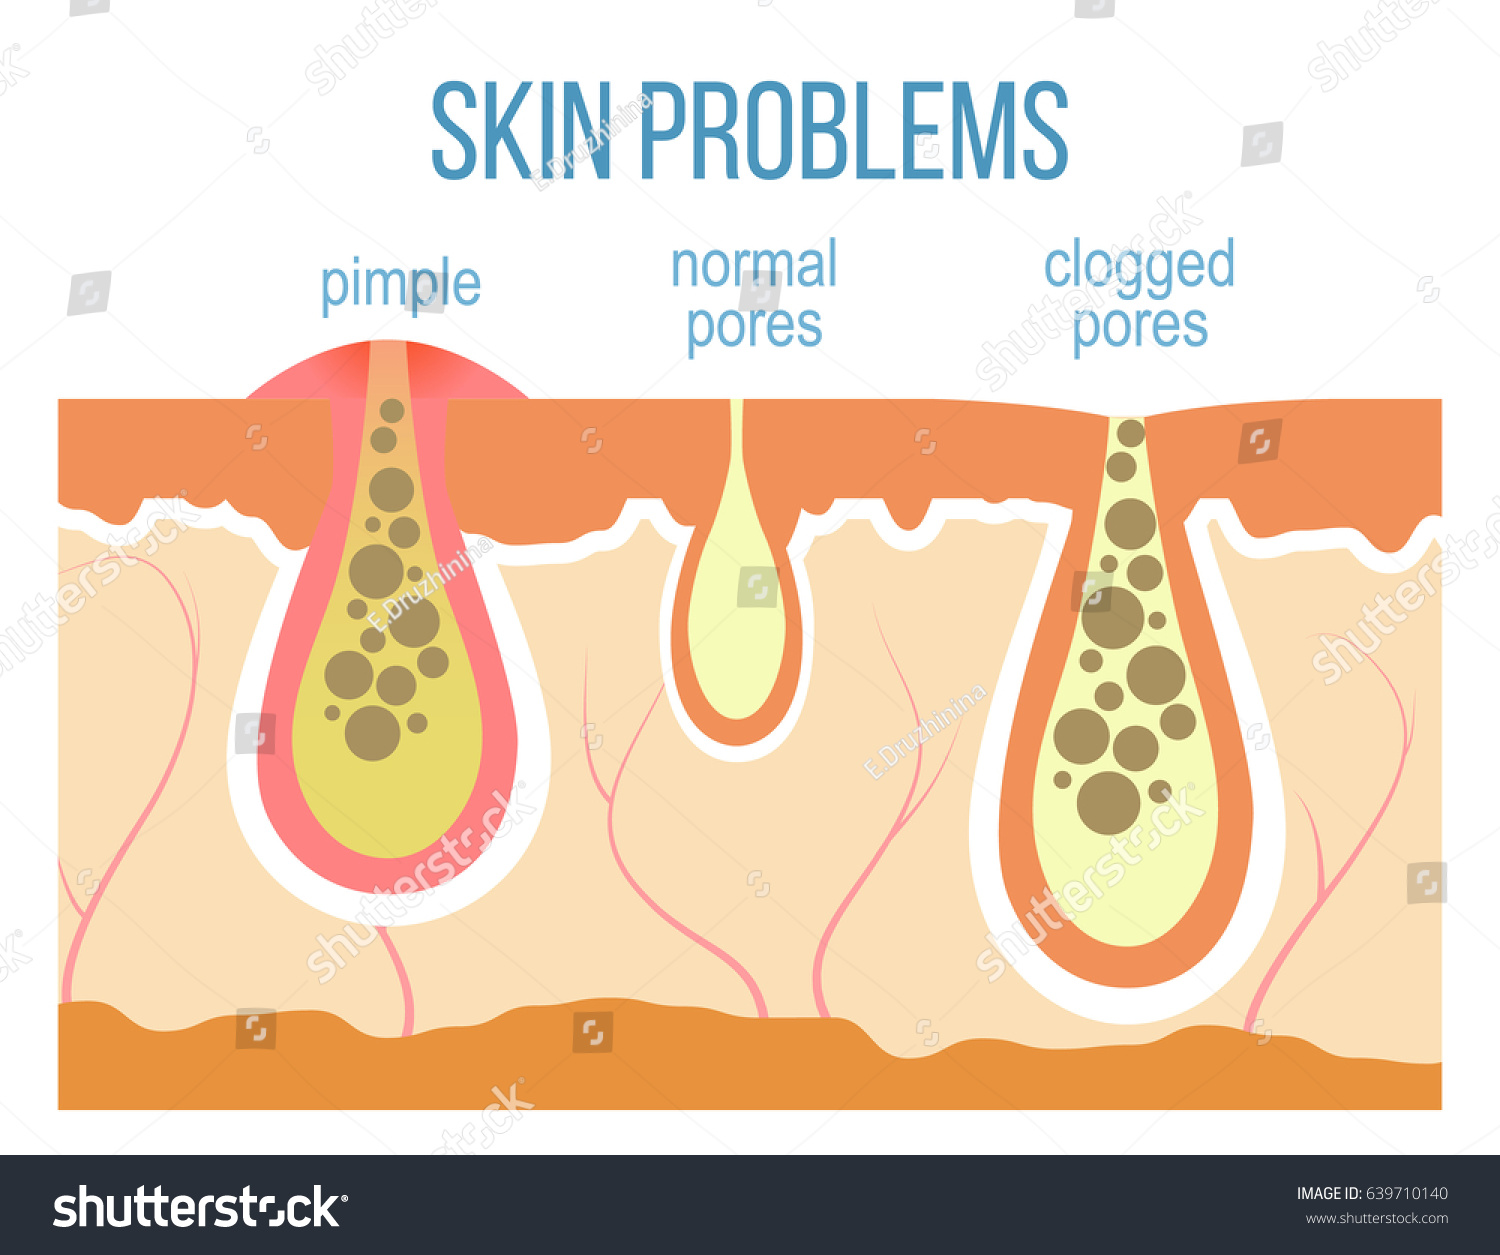 pimples on cheek diagram raid 5 concept with skin problems acne clogged pores stock